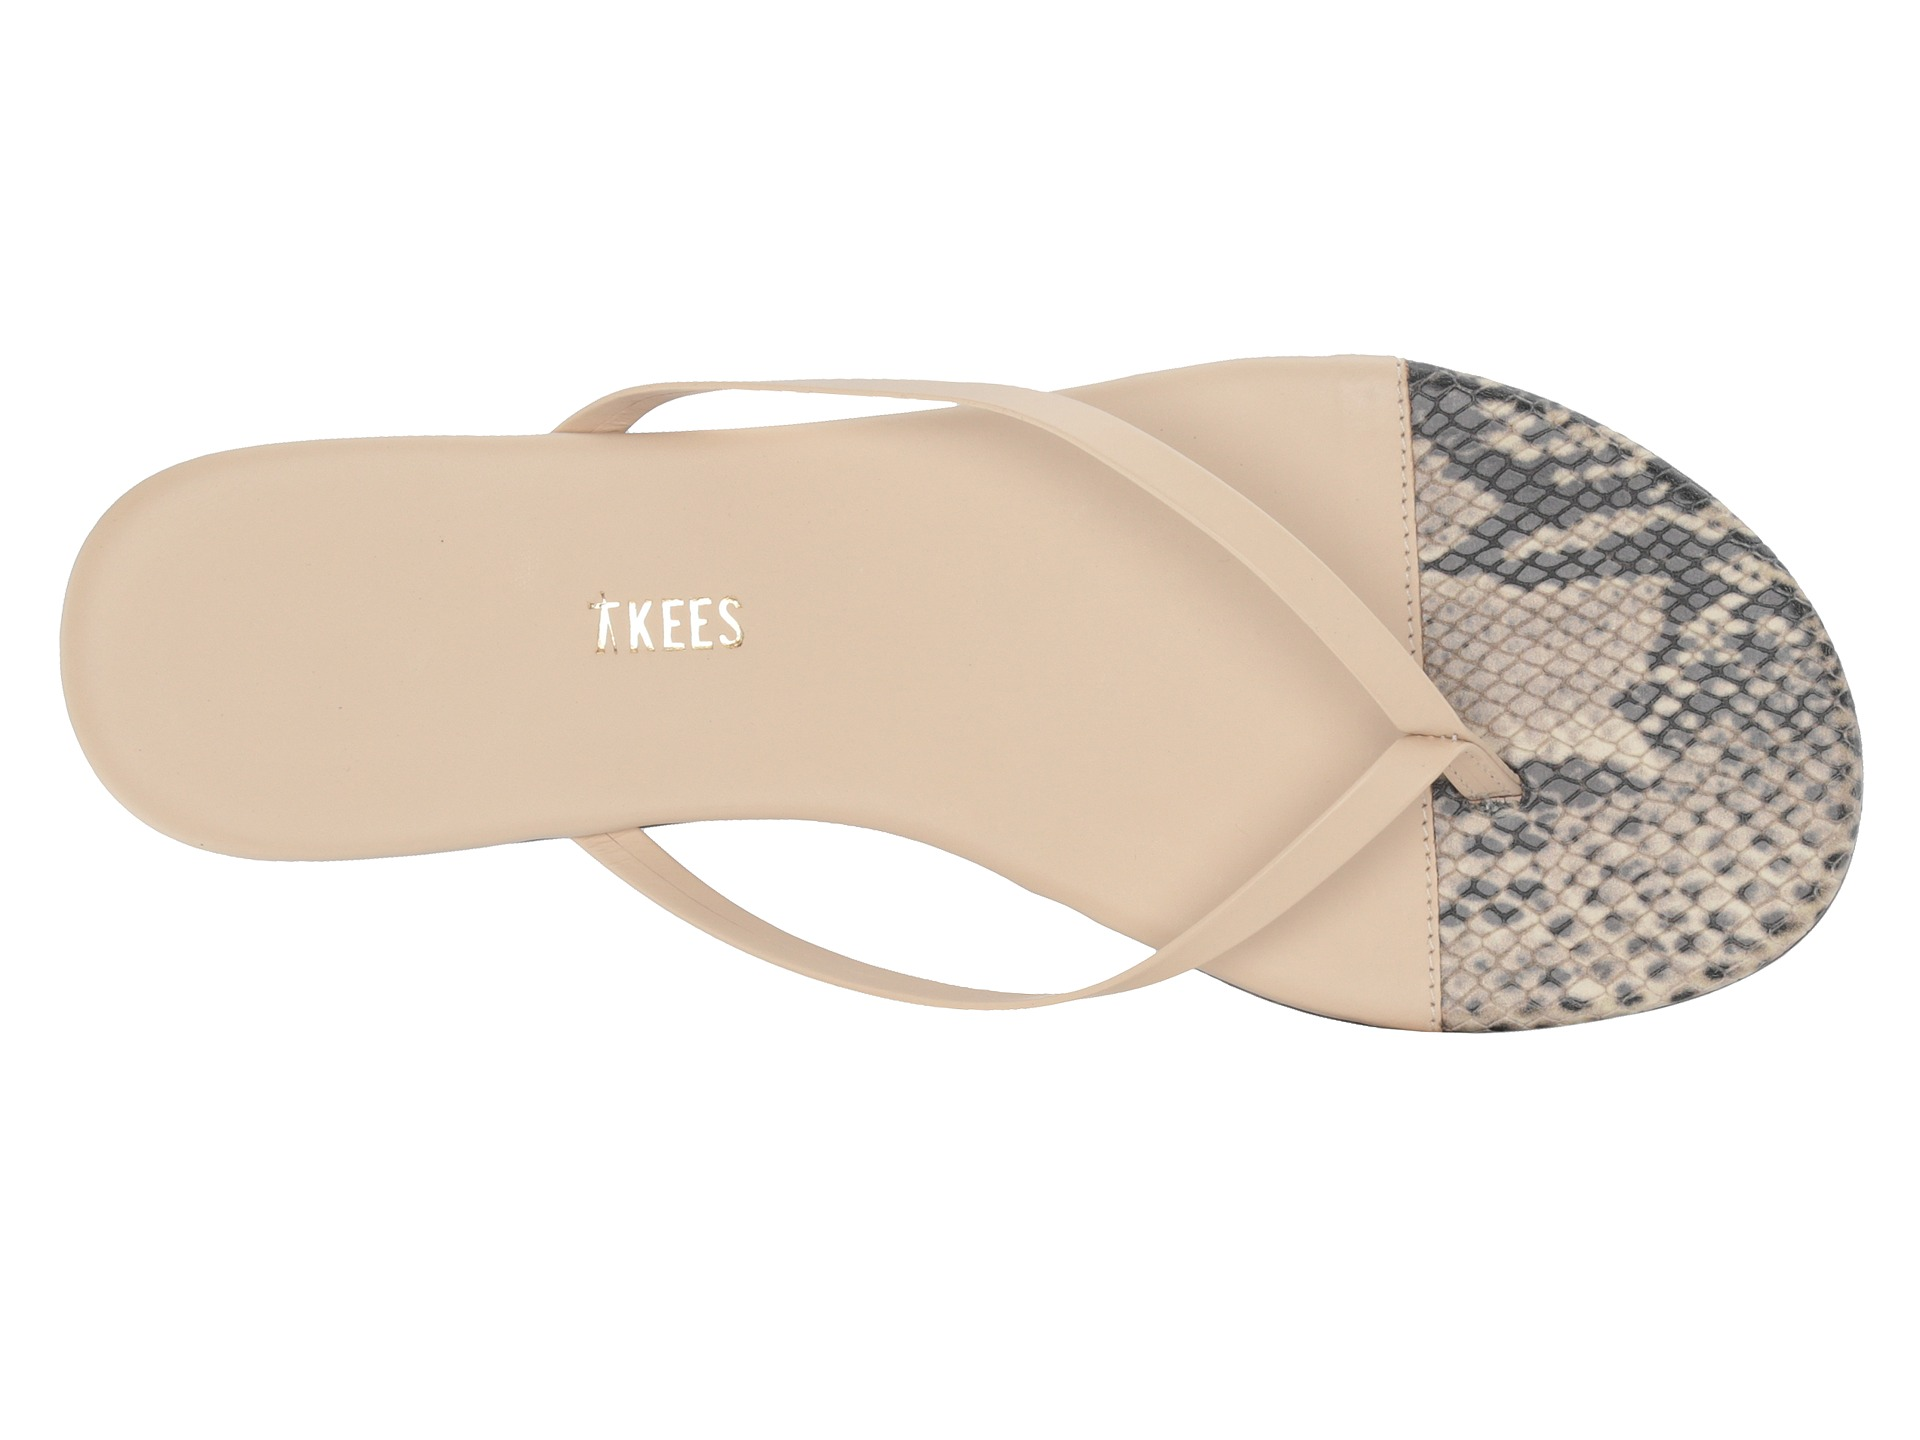 TKEES Flip-Flop-French Tips at Zappos.com